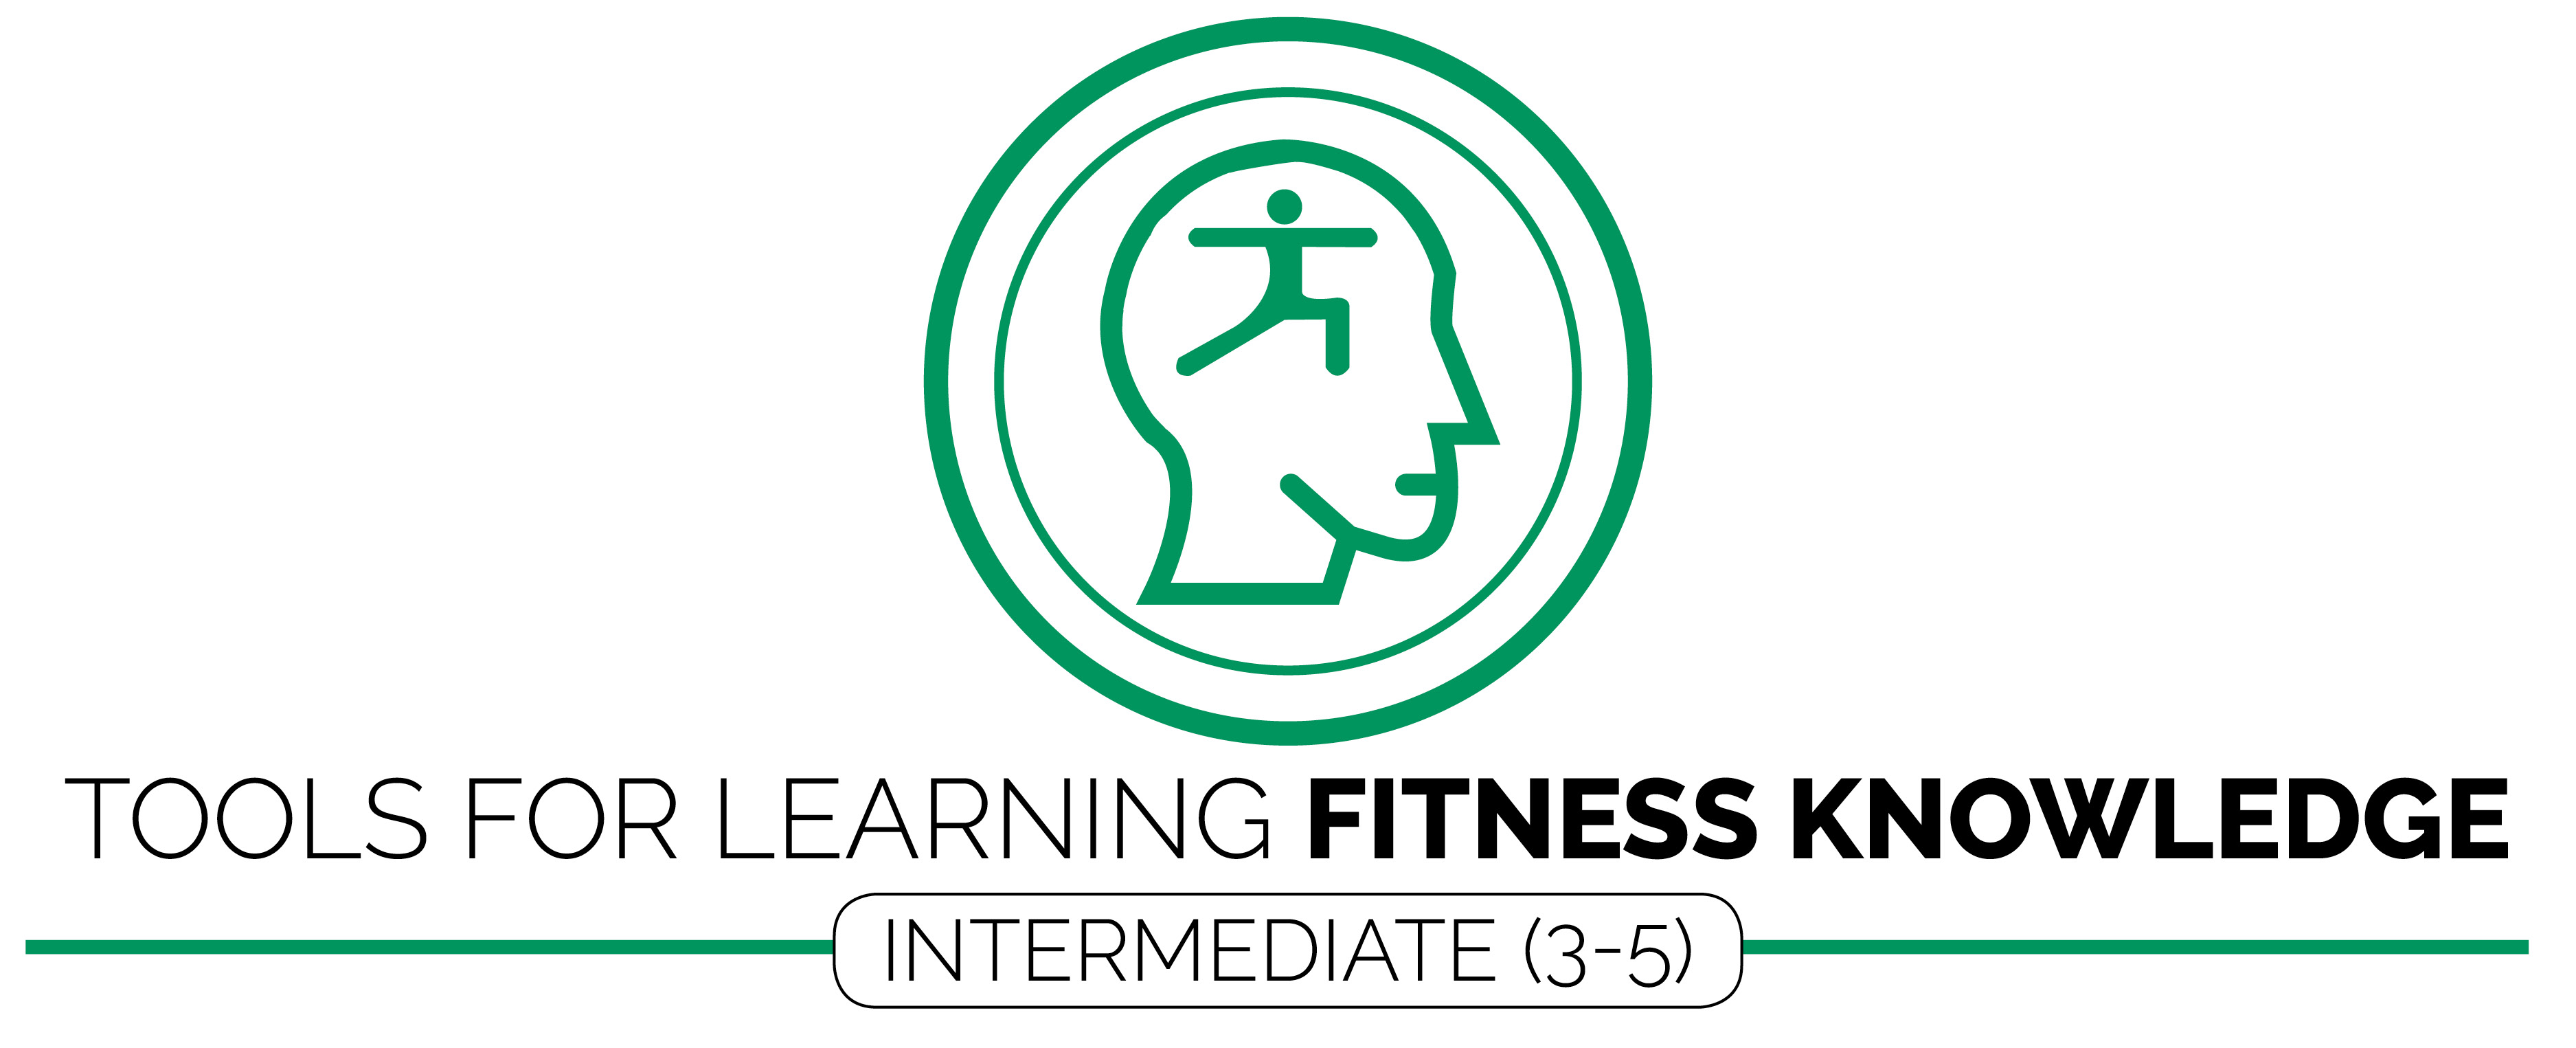 Fitness Knowledge Intermediate 3 5 – OPEN Physical Education